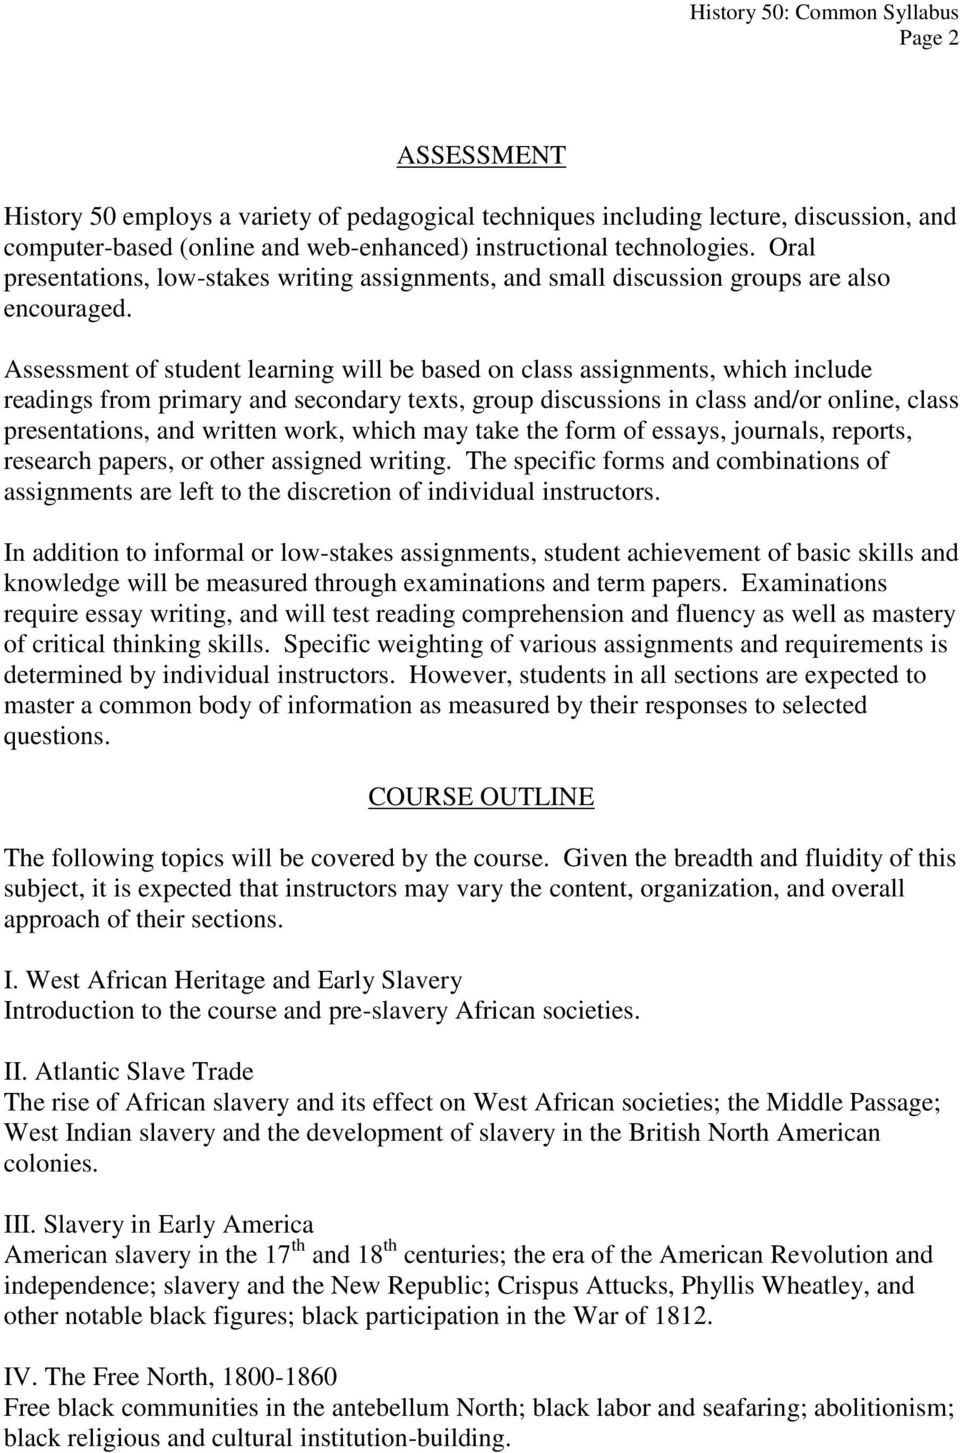 essays on slavery in america color org african american odyssey  article about leadership camp essay resume format for chartered what led to the american revolution essays